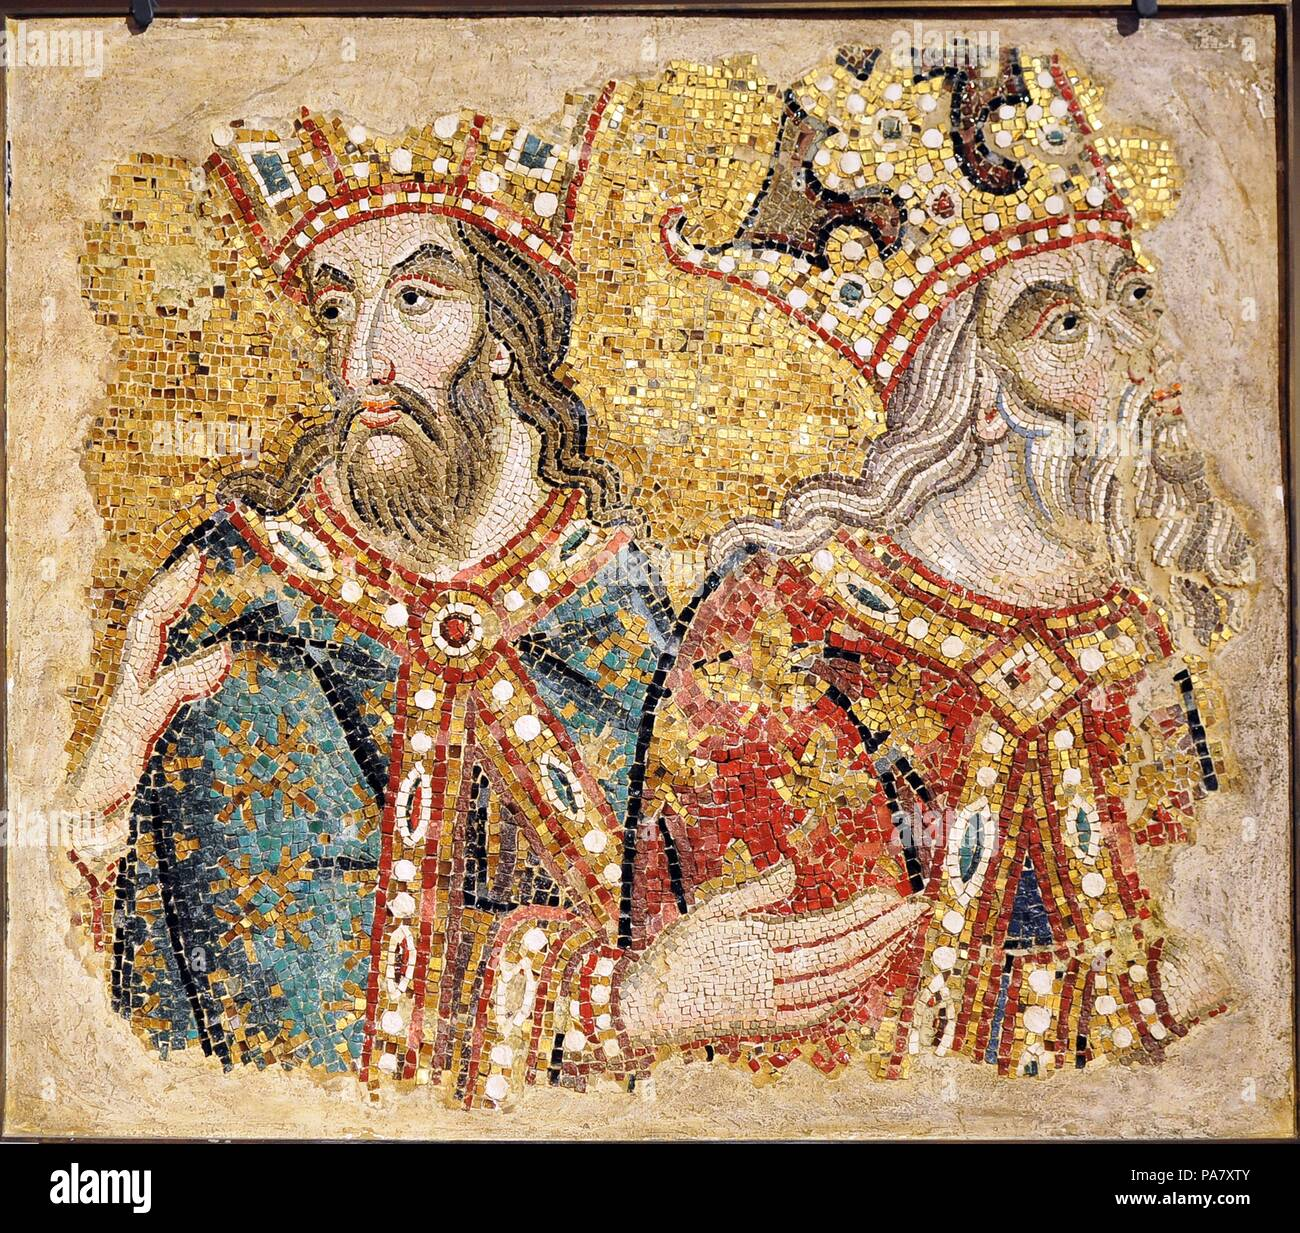 The Three Magi. Mosaic fragments from the Basilica San Marco, Venice. Museum: Saint Mark's Basilica, Venice. - Stock Image